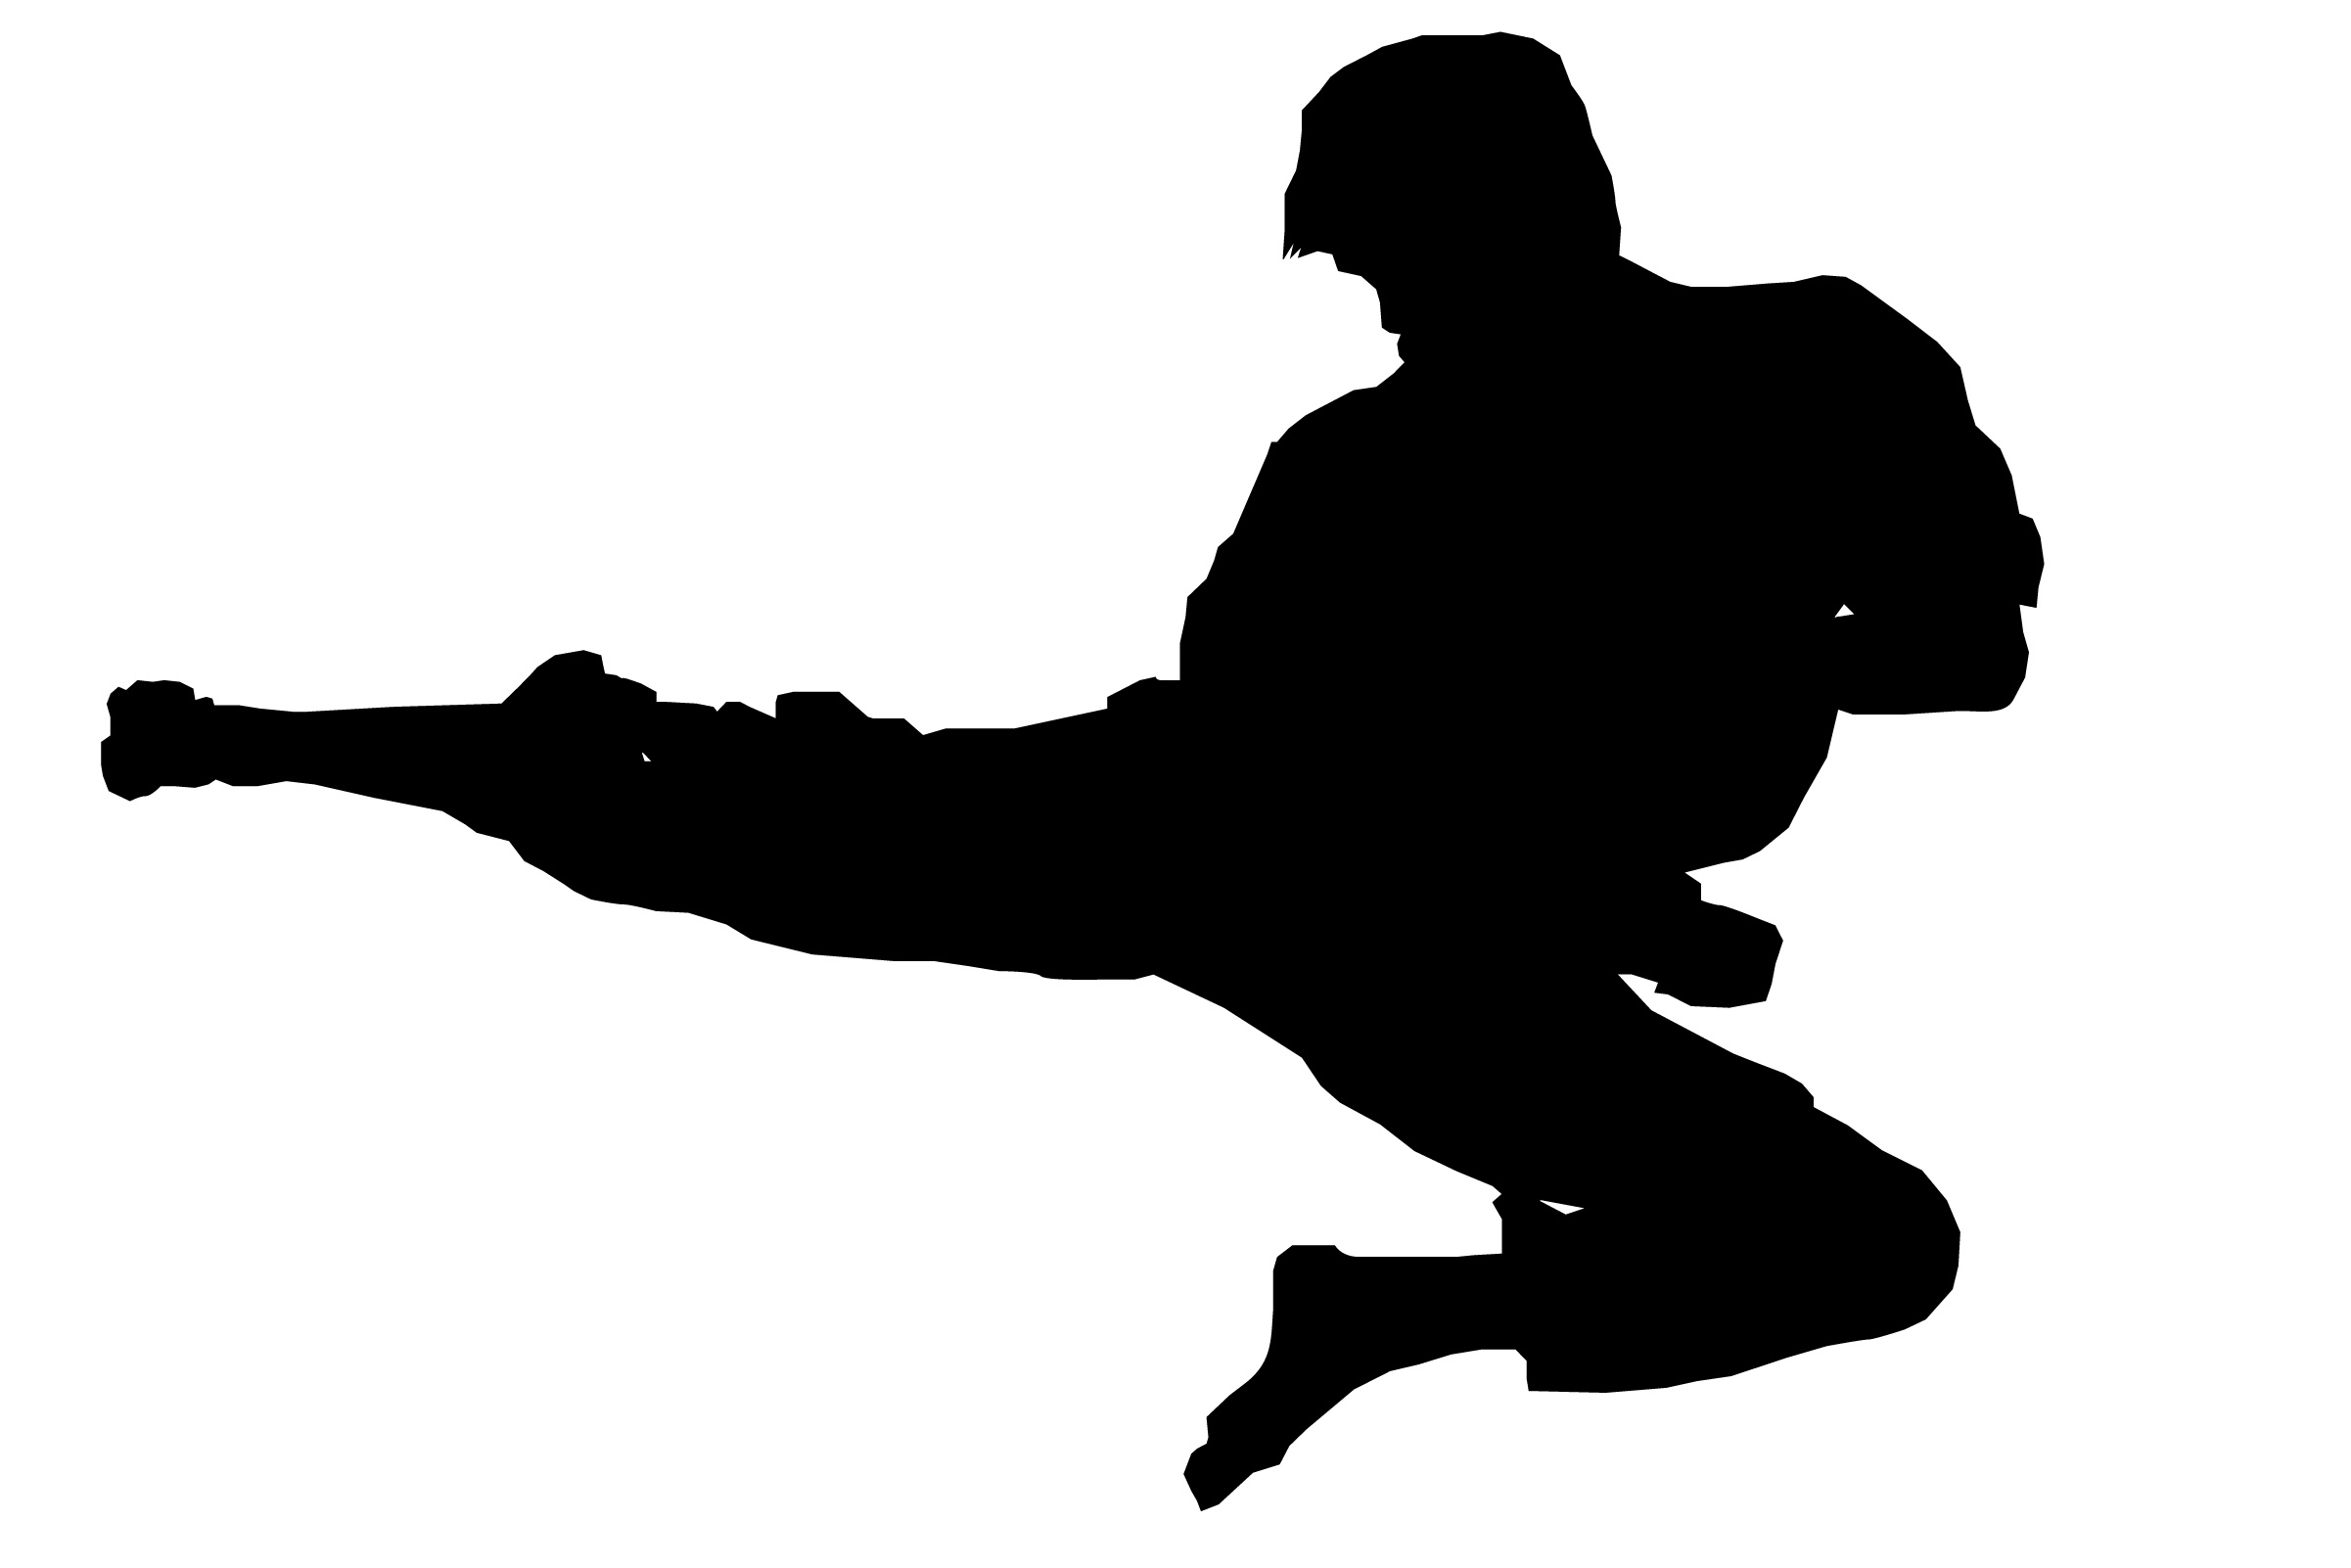 Karate Images - ClipArt Best